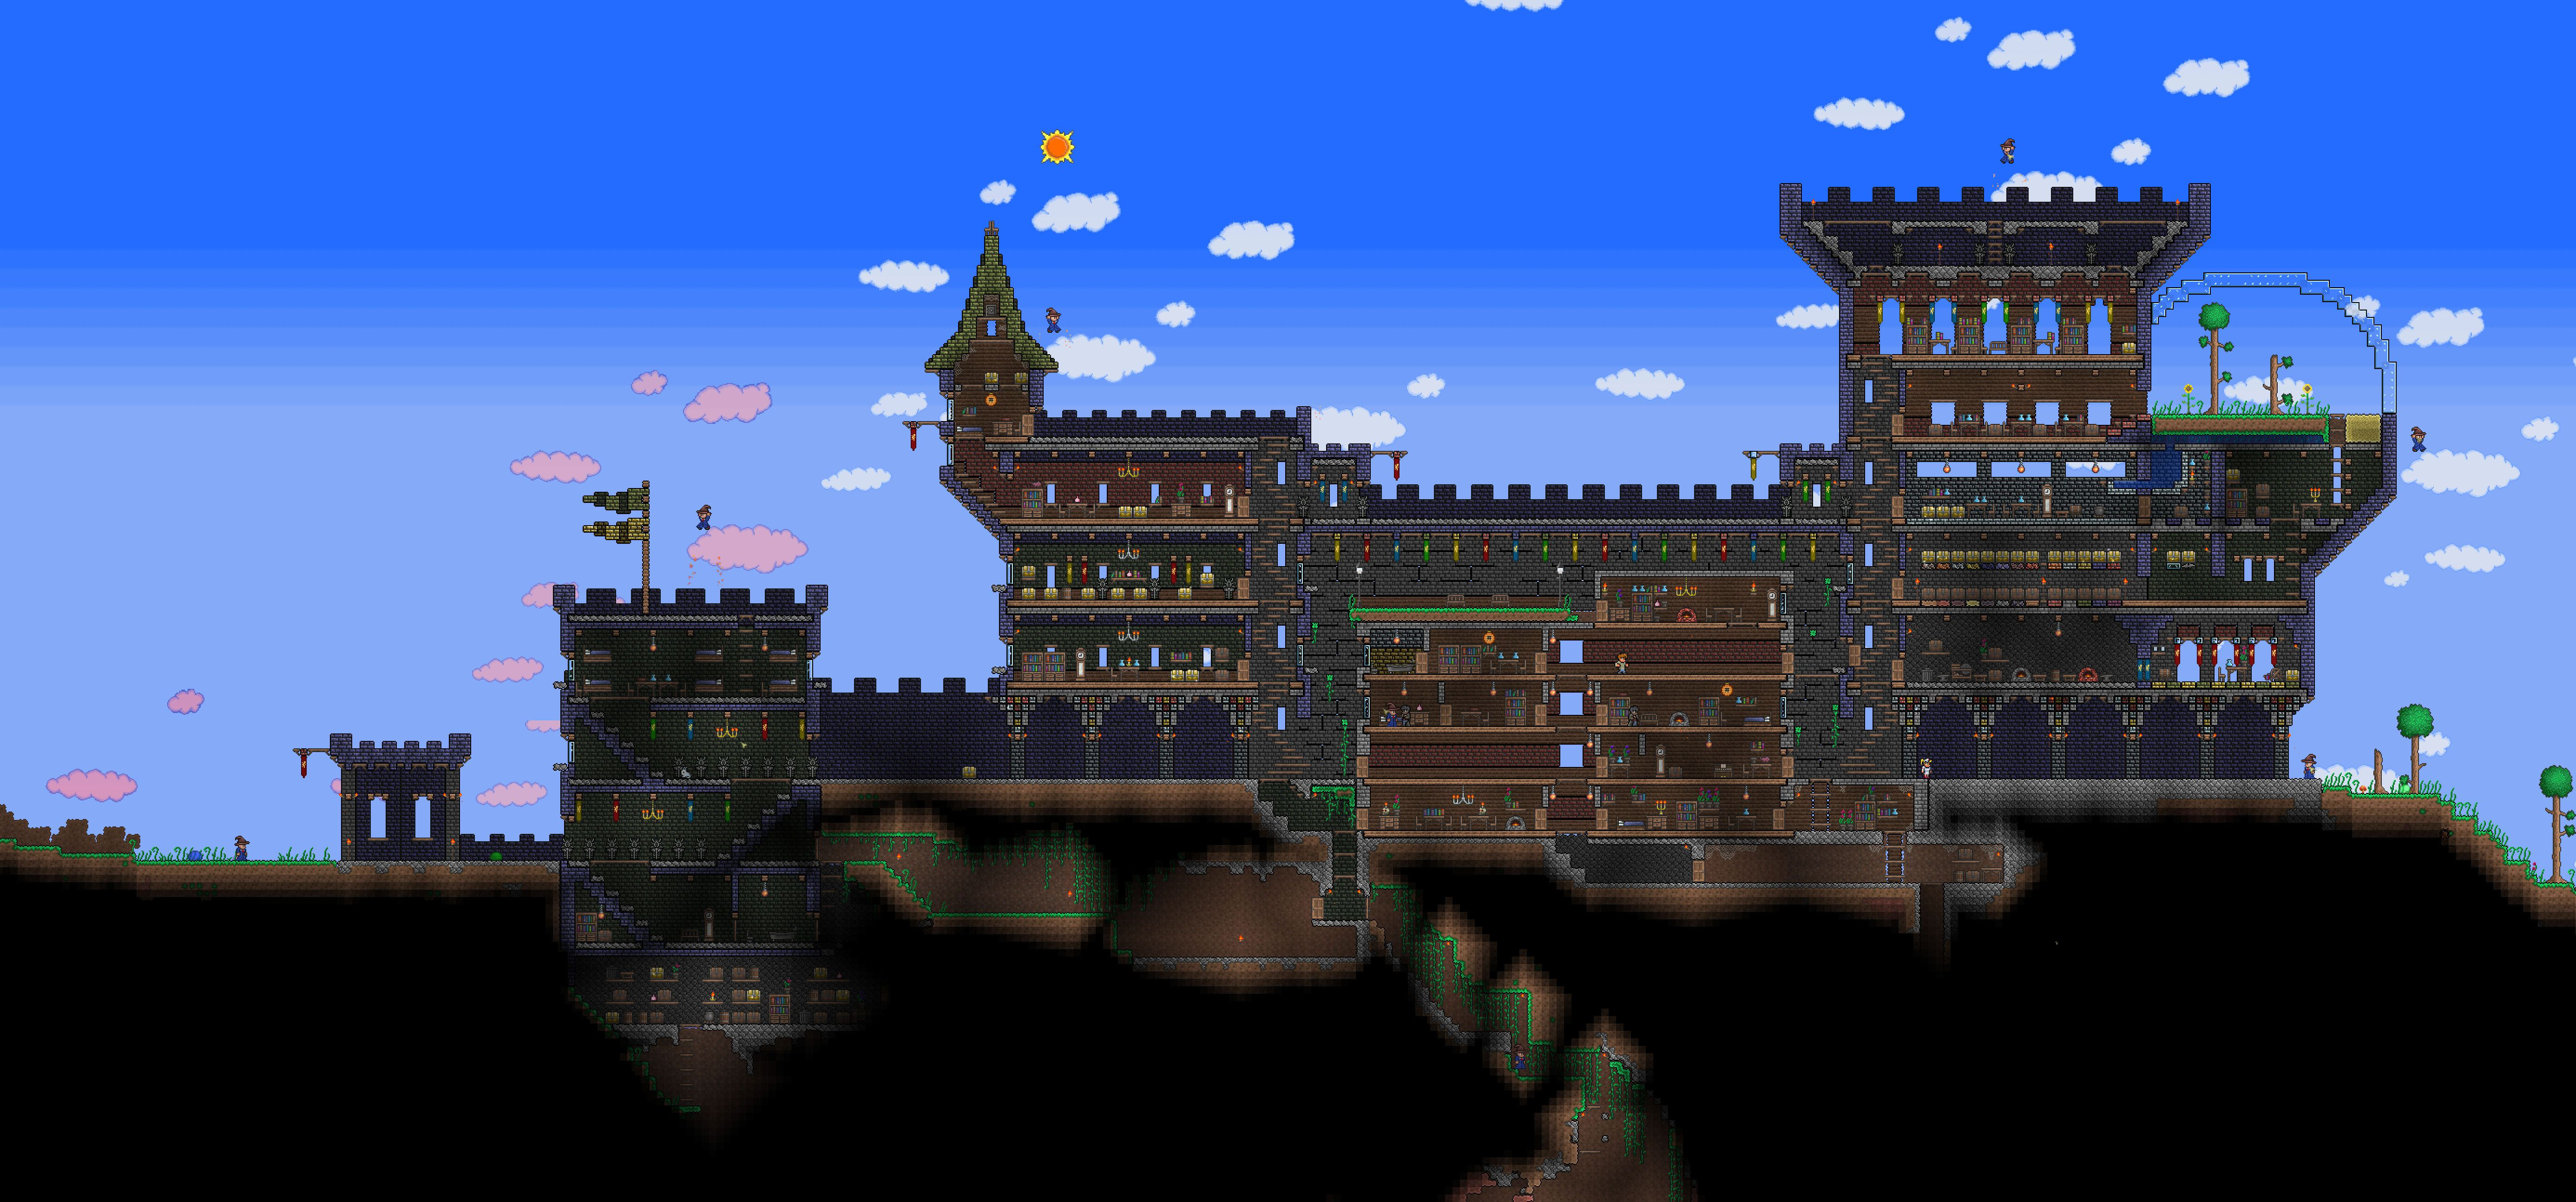 Terraria castle tower castle tower any tips terraria - Terraria Castle By Naughty Uk Deviantart Com On Deviantart